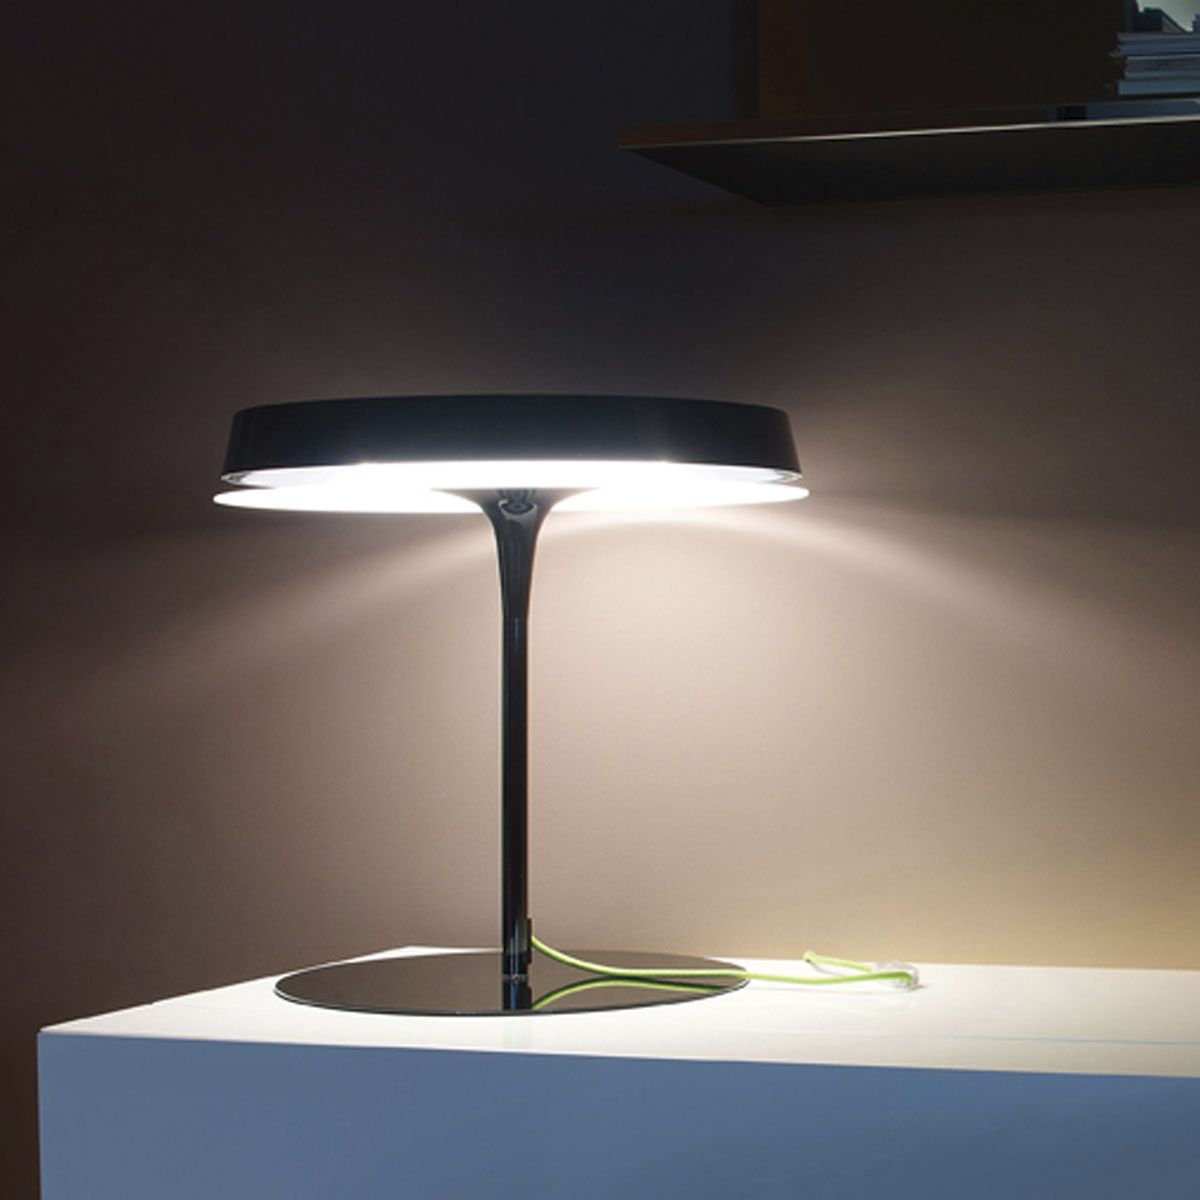 Contemporary table lamp (aluminium) - OLSEN by Jorge Pensi - BLUX